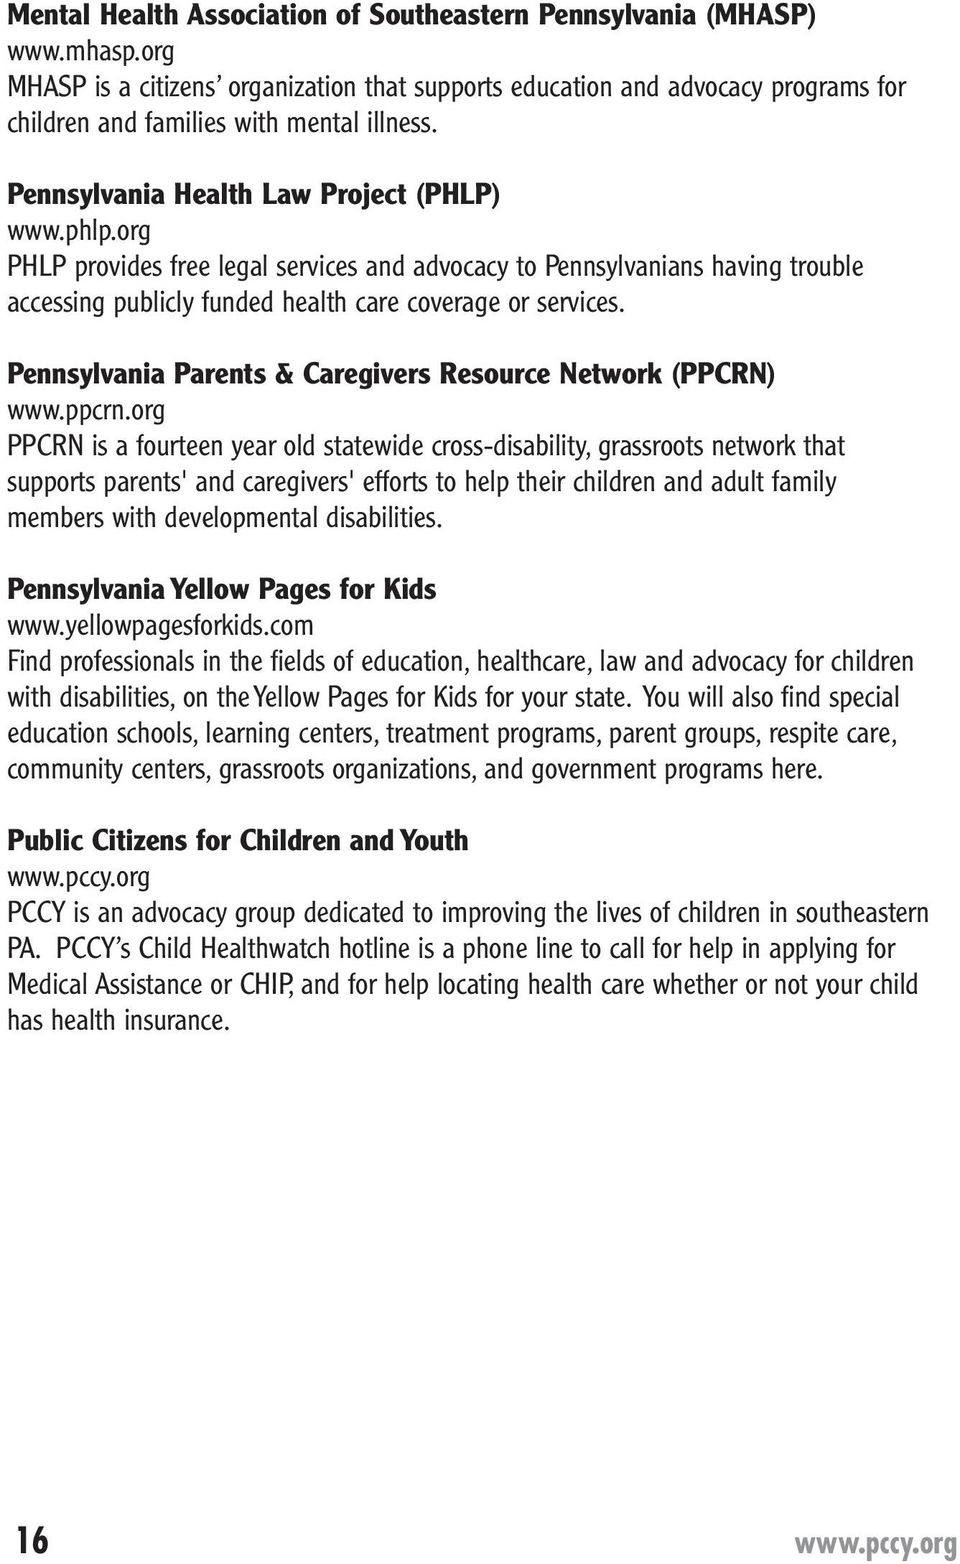 org PHLP provides free legal services and advocacy to Pennsylvanians having trouble accessing publicly funded health care coverage or services.